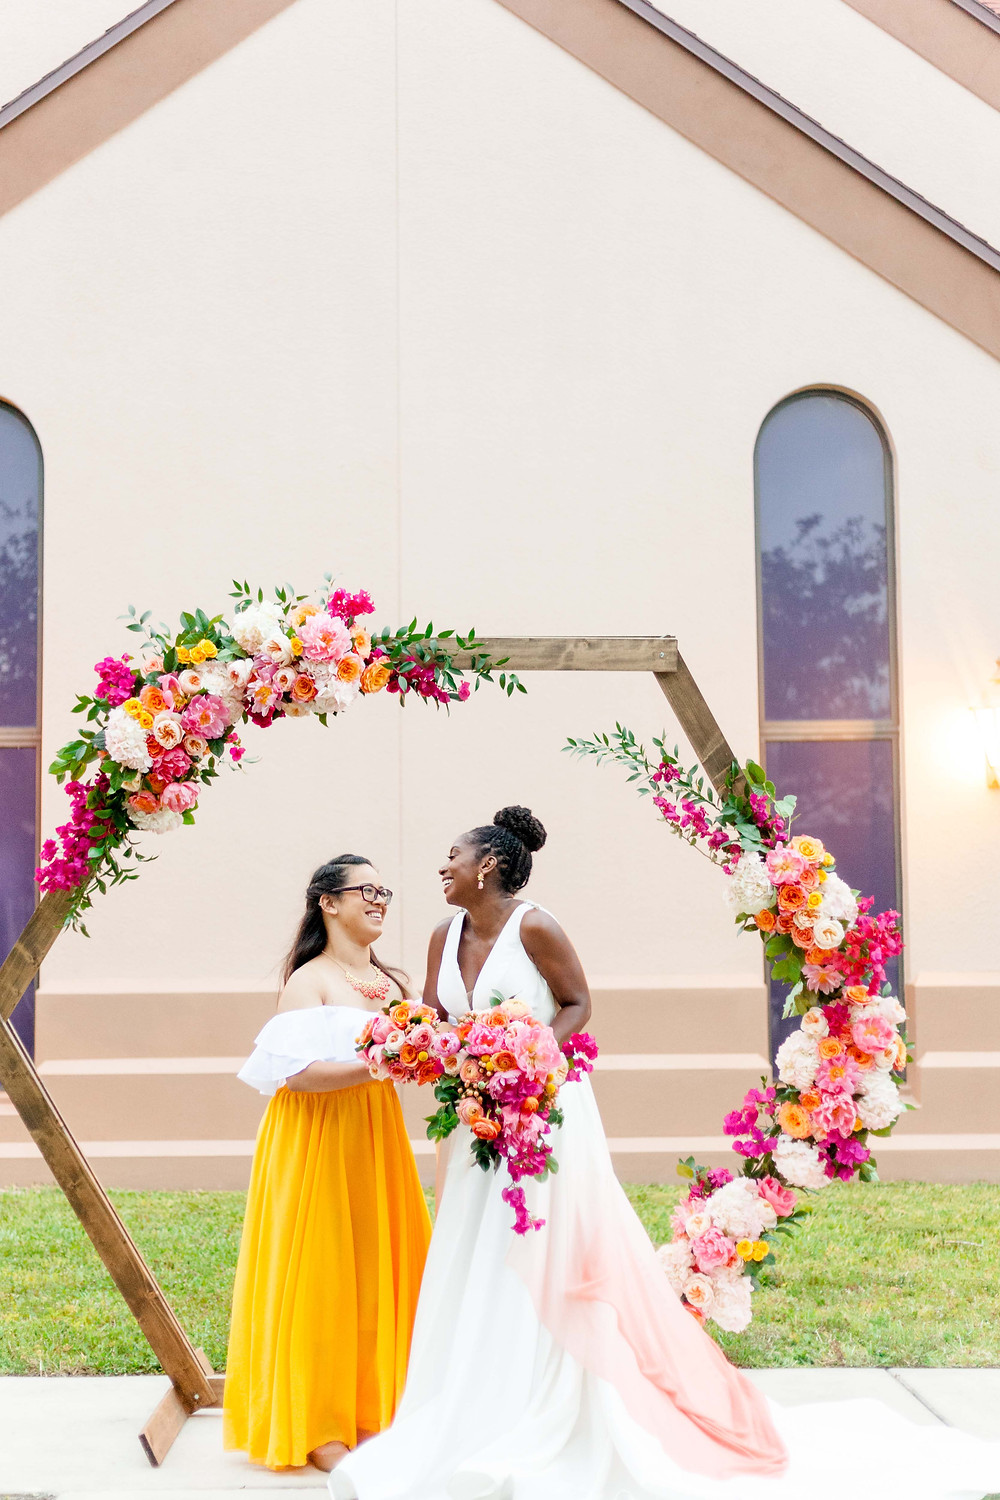 Bride and bridesmaid in front of hexagon arch.